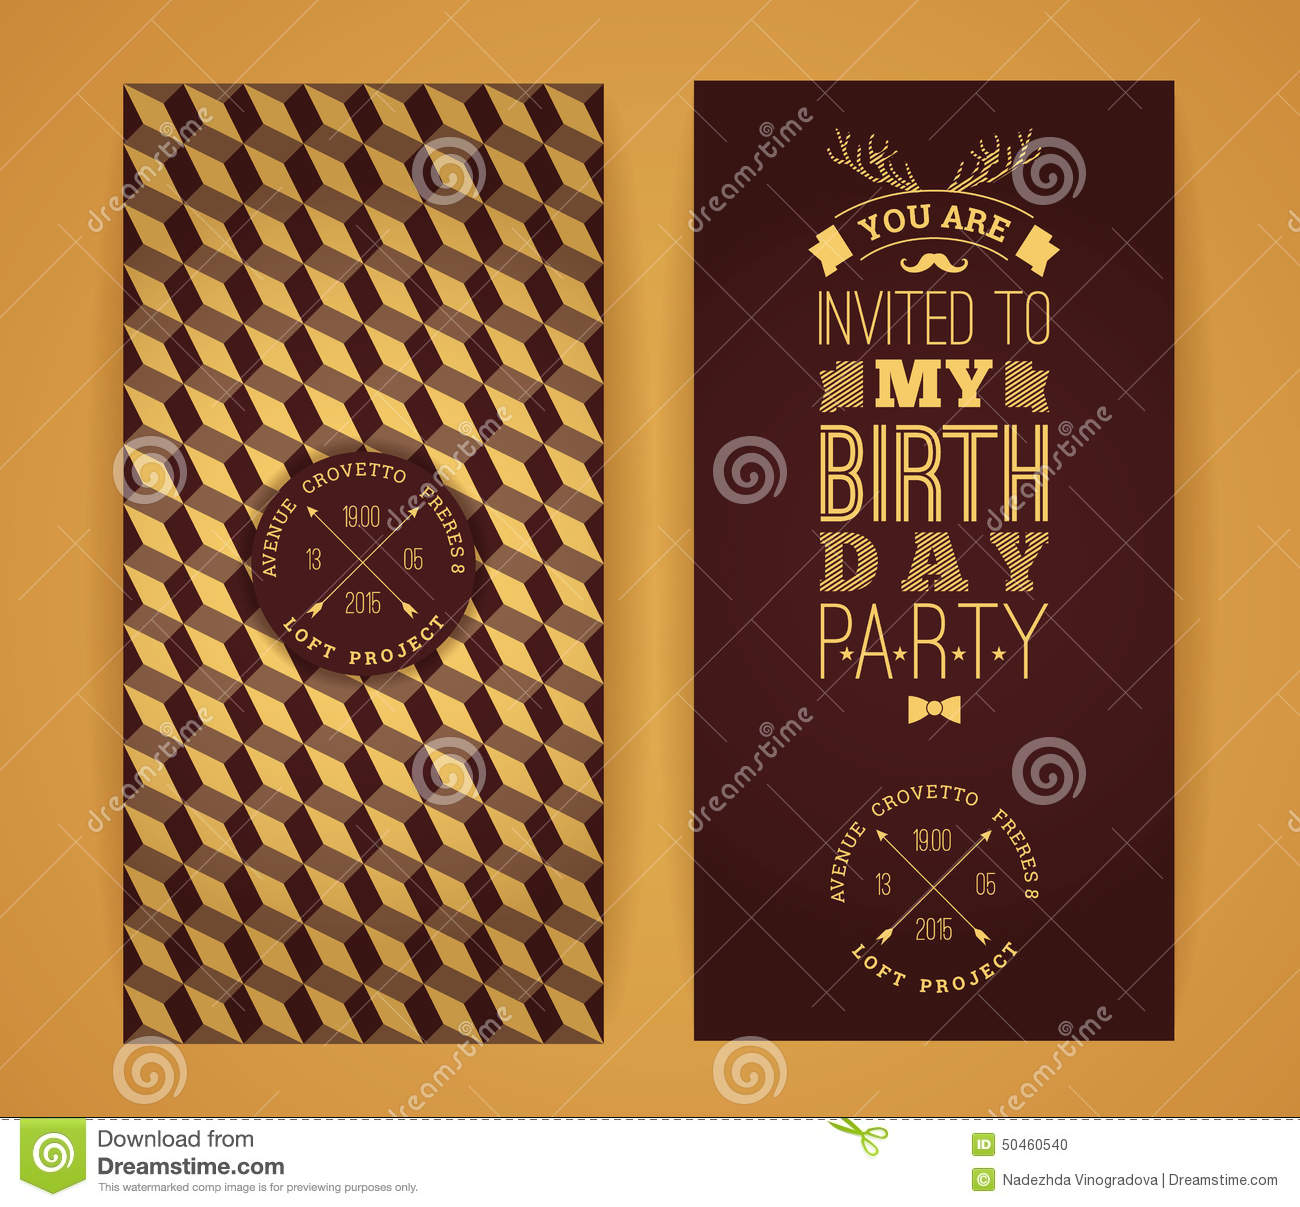 Happy Birthday Invitation Vintage Retro Background With Geometric Pattern Hipster Style